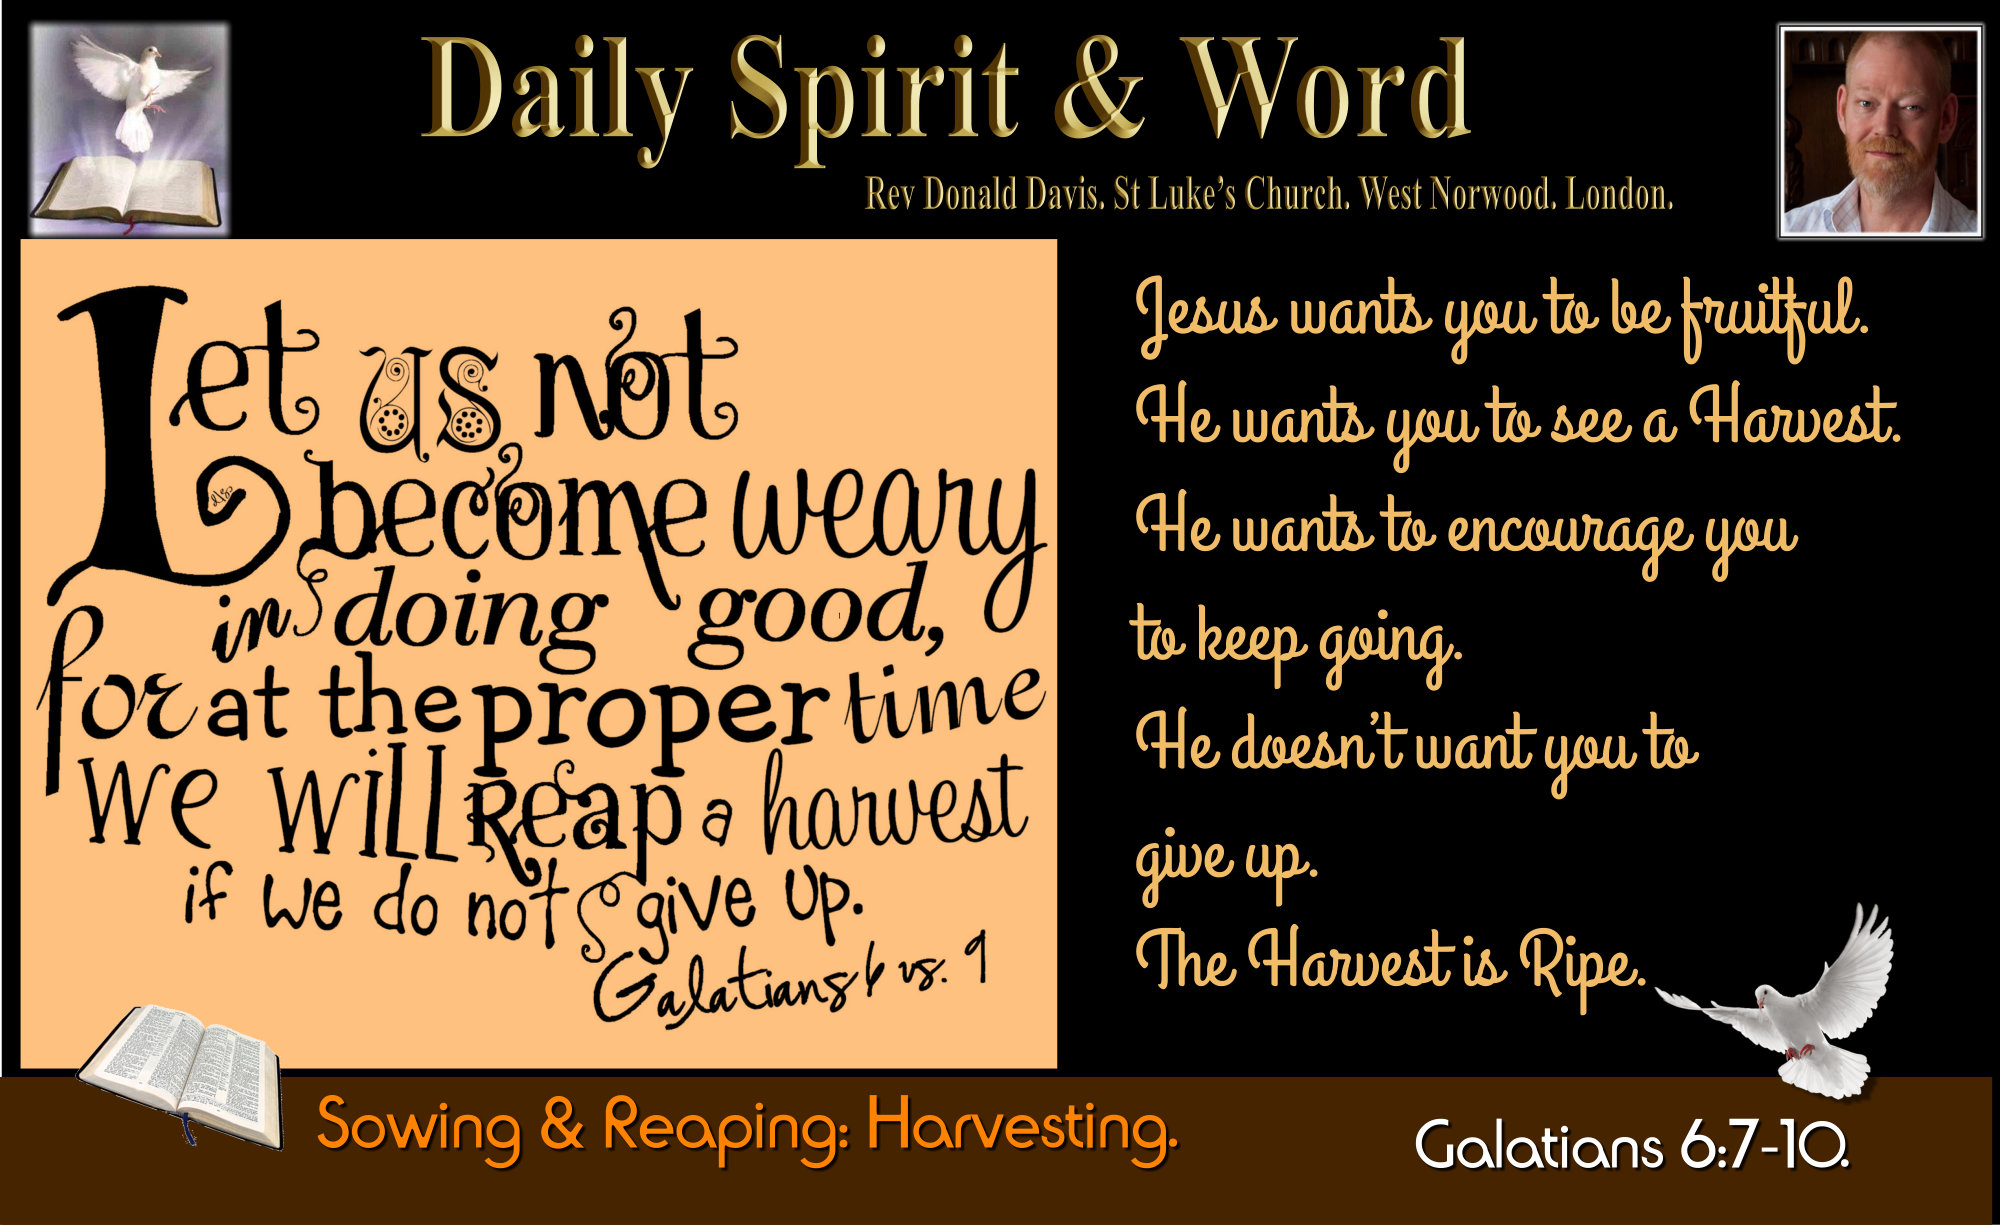 Sowing and Reaping, God cannot be mocked